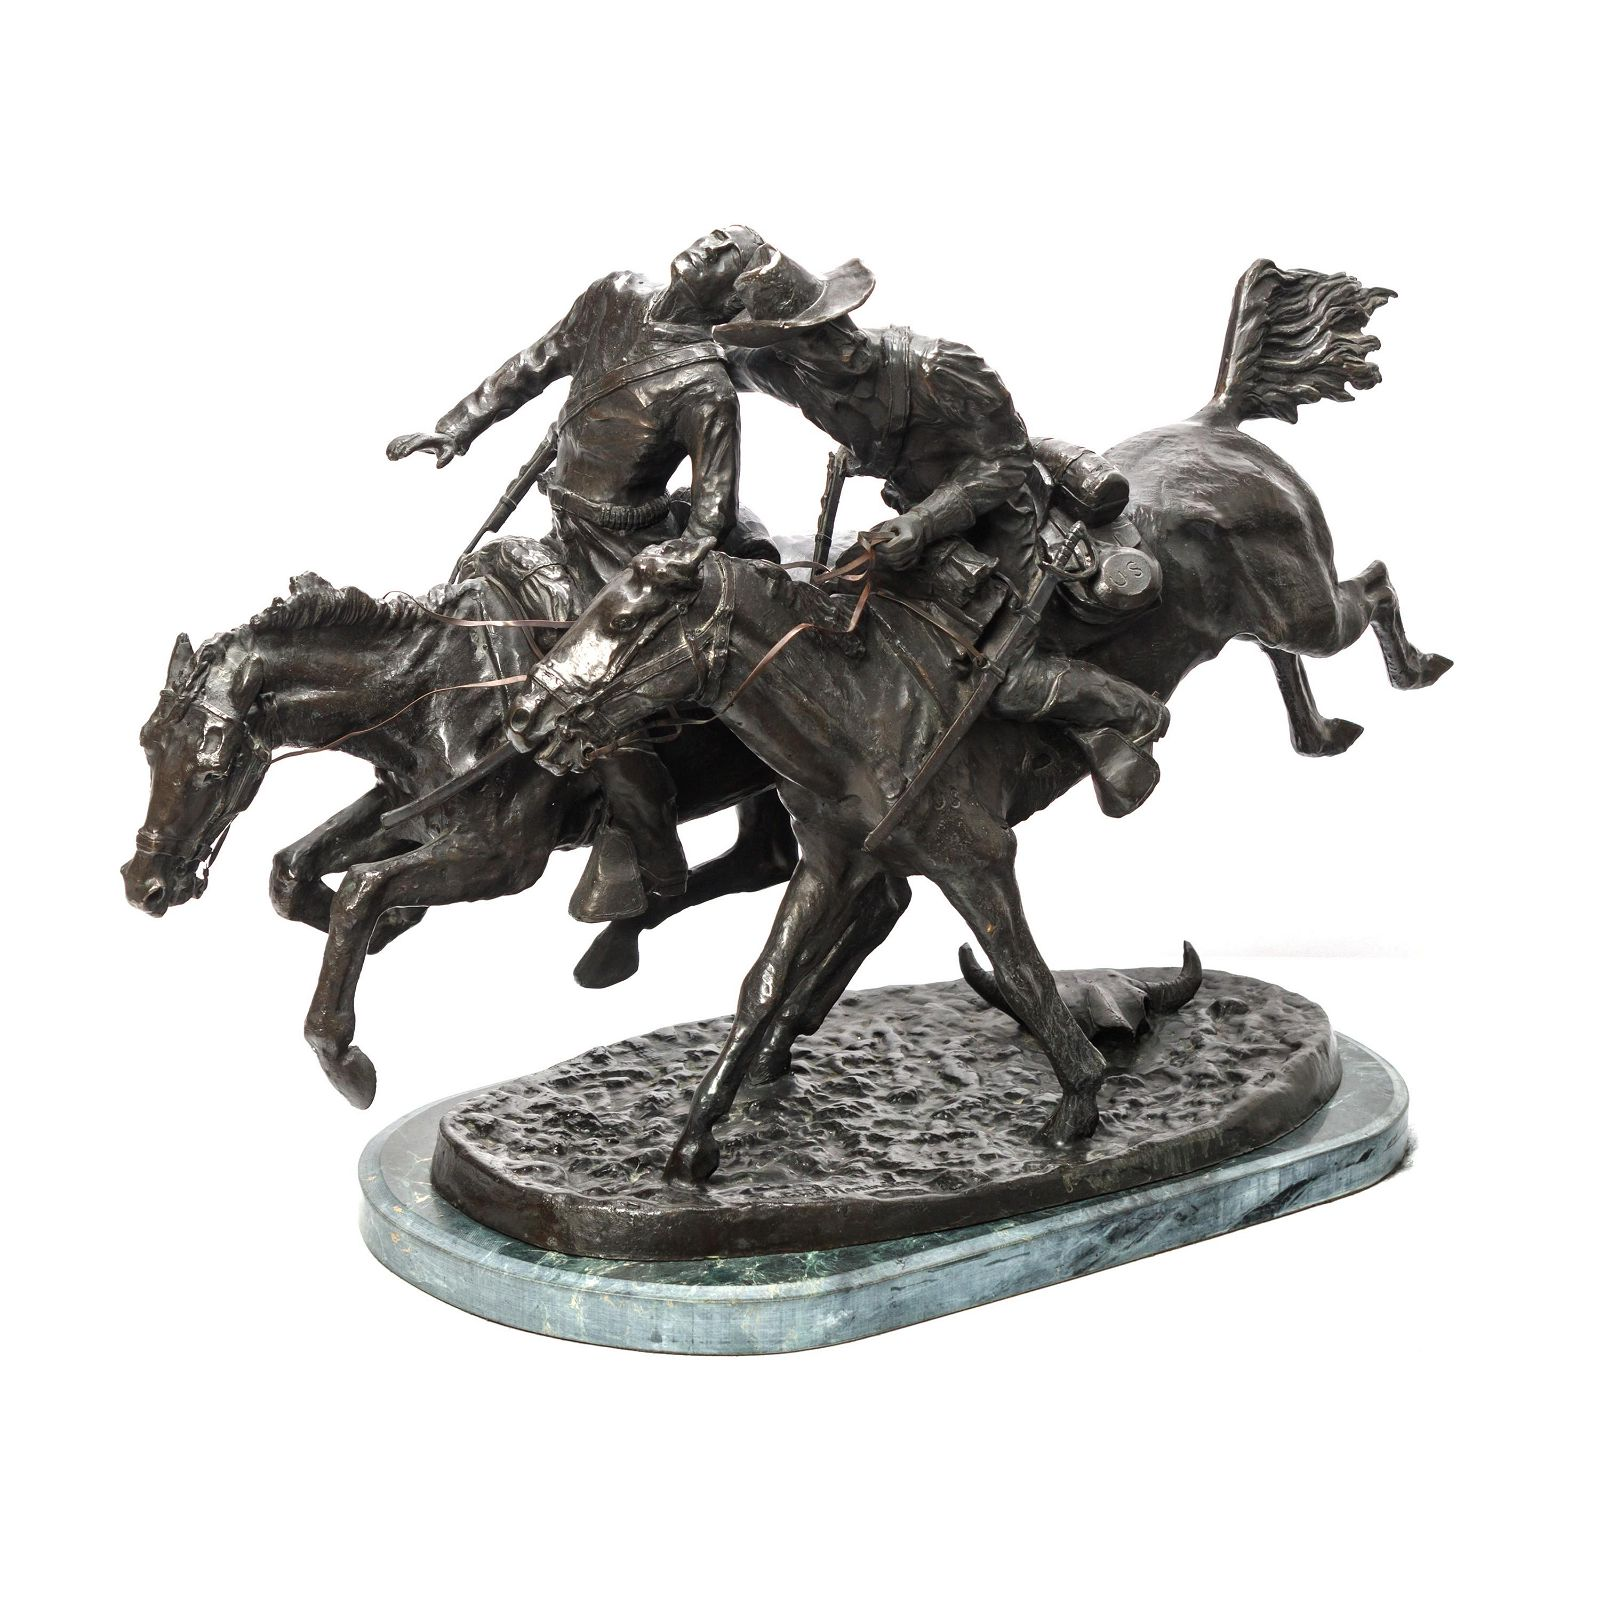 Bronze Equestrian Statue After Frederic Remington